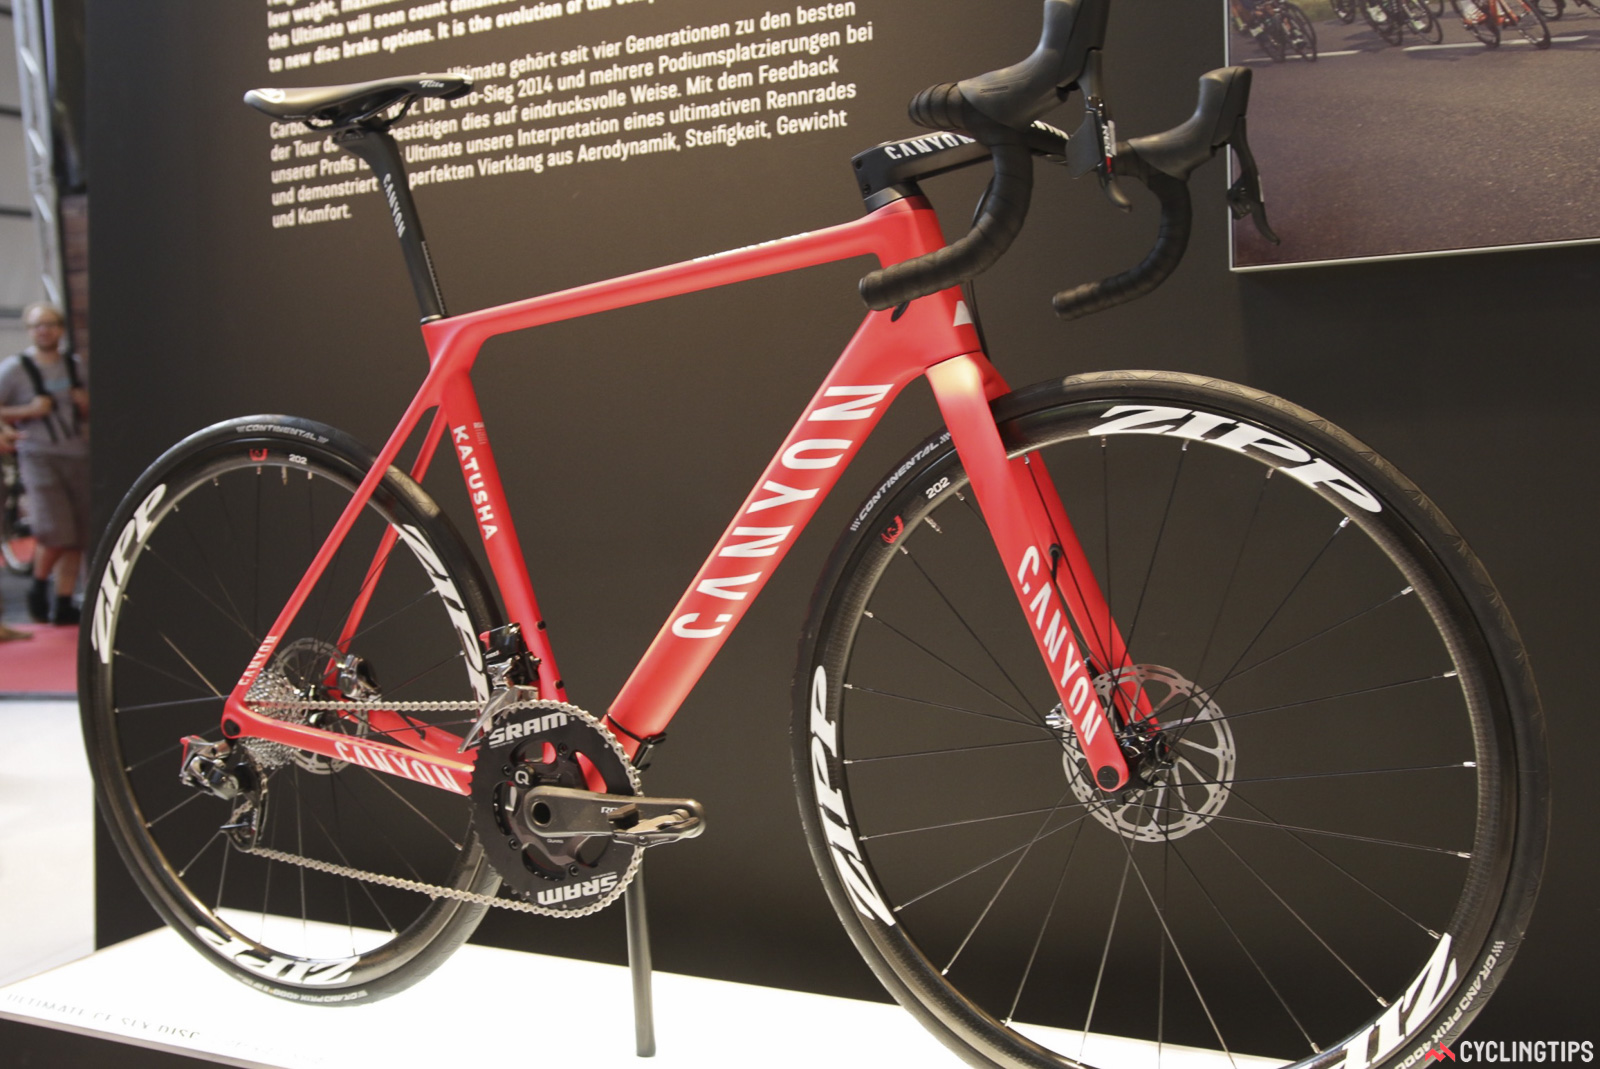 Canyon were teasing what the pros have been testing. First was the Ultimate CF SLX Disc as tested by Katusha. Photo: David Rome.